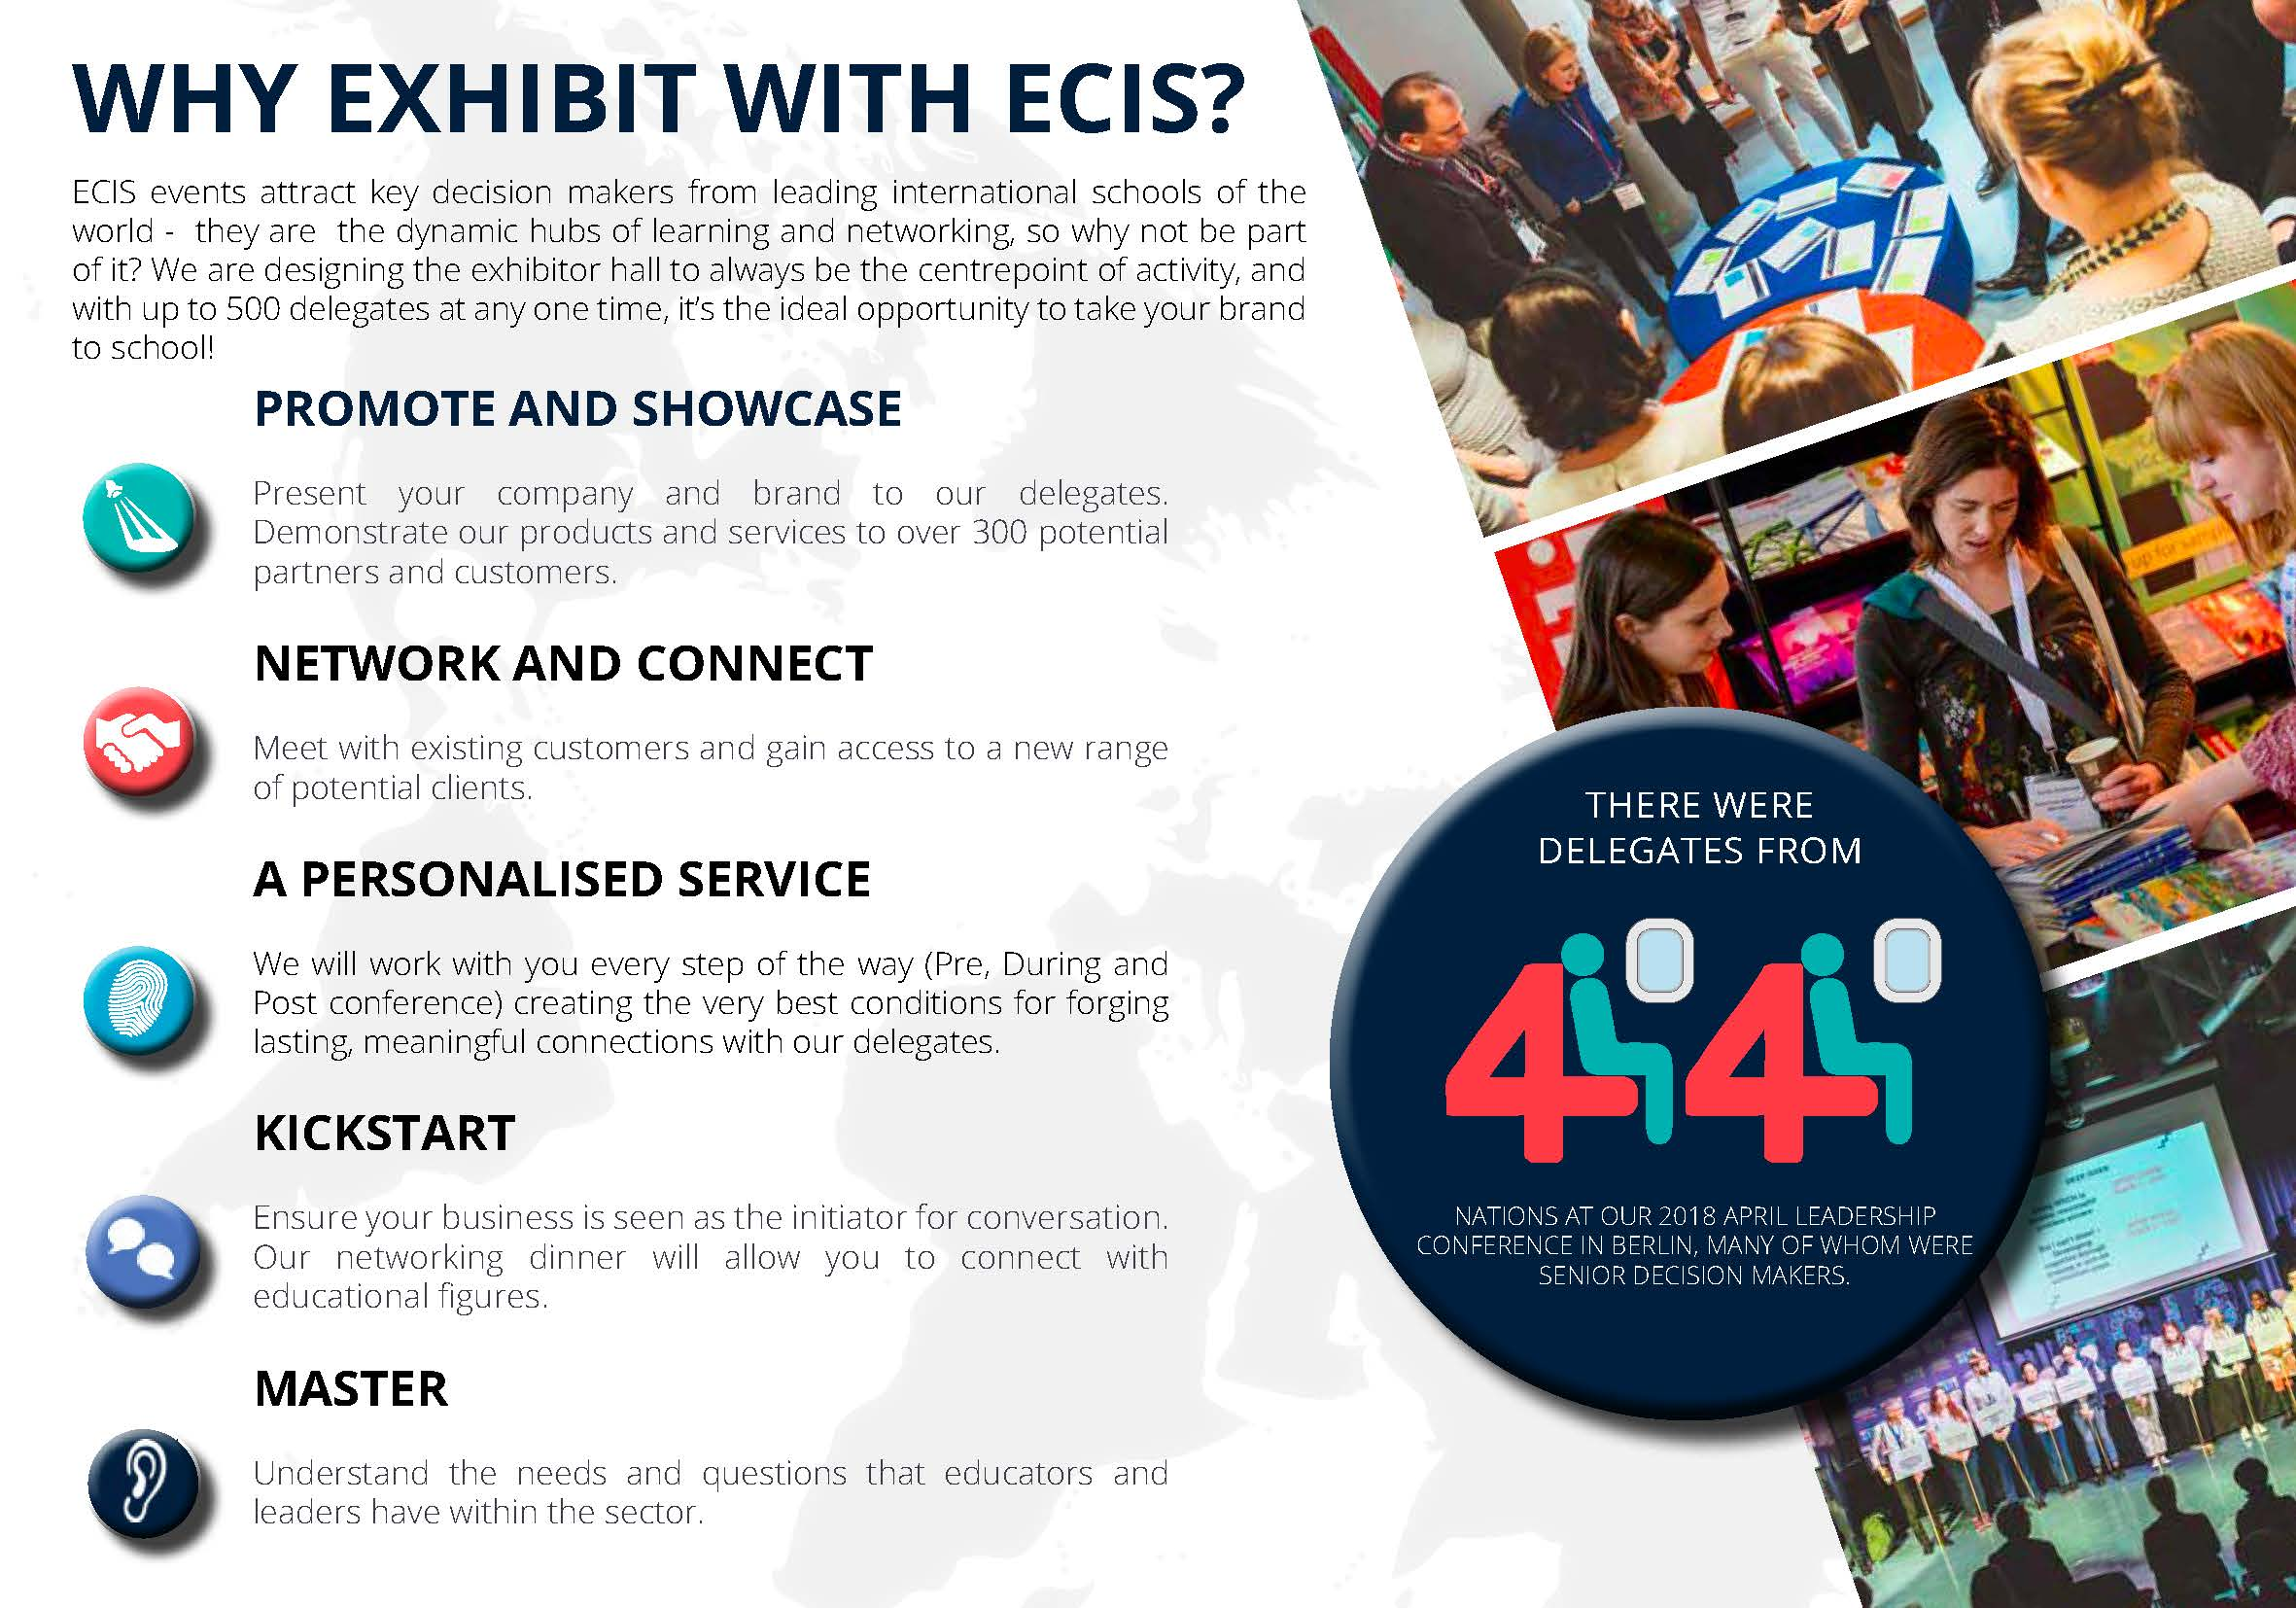 ECIS_exhibitorpackages_MLIE[2]_Page_2